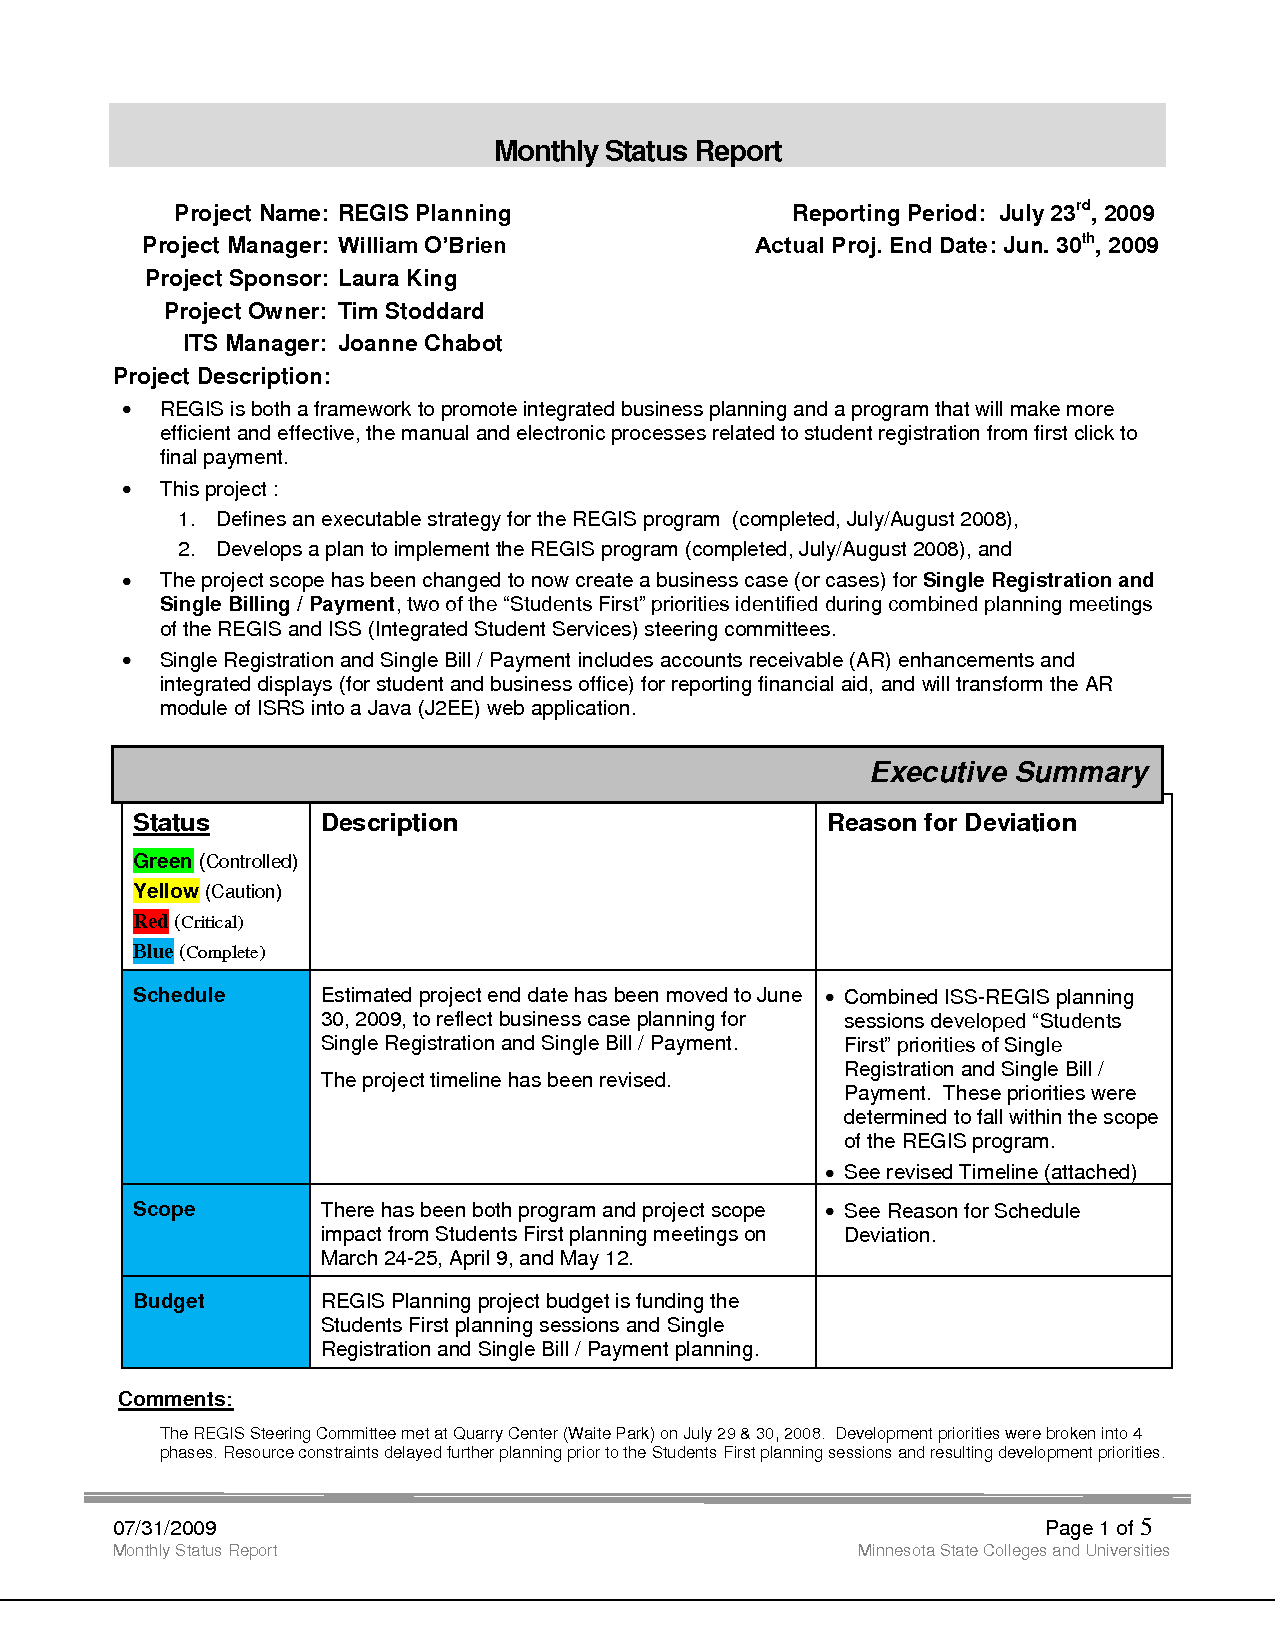 Research Project Report Template - Atlantaauctionco Pertaining To Research Project Report Template